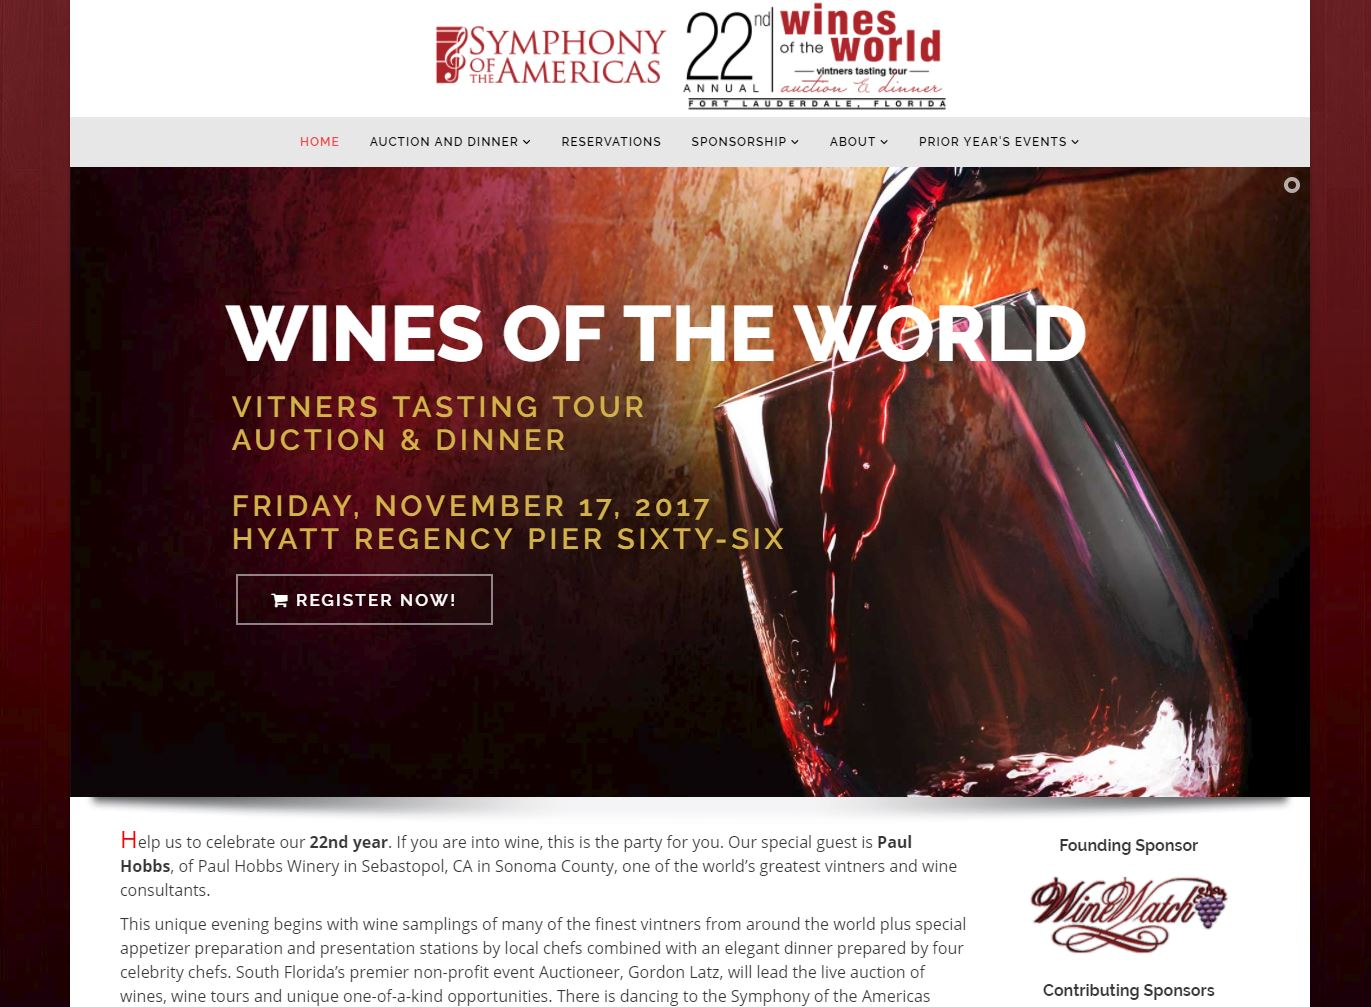 Wines of the world event